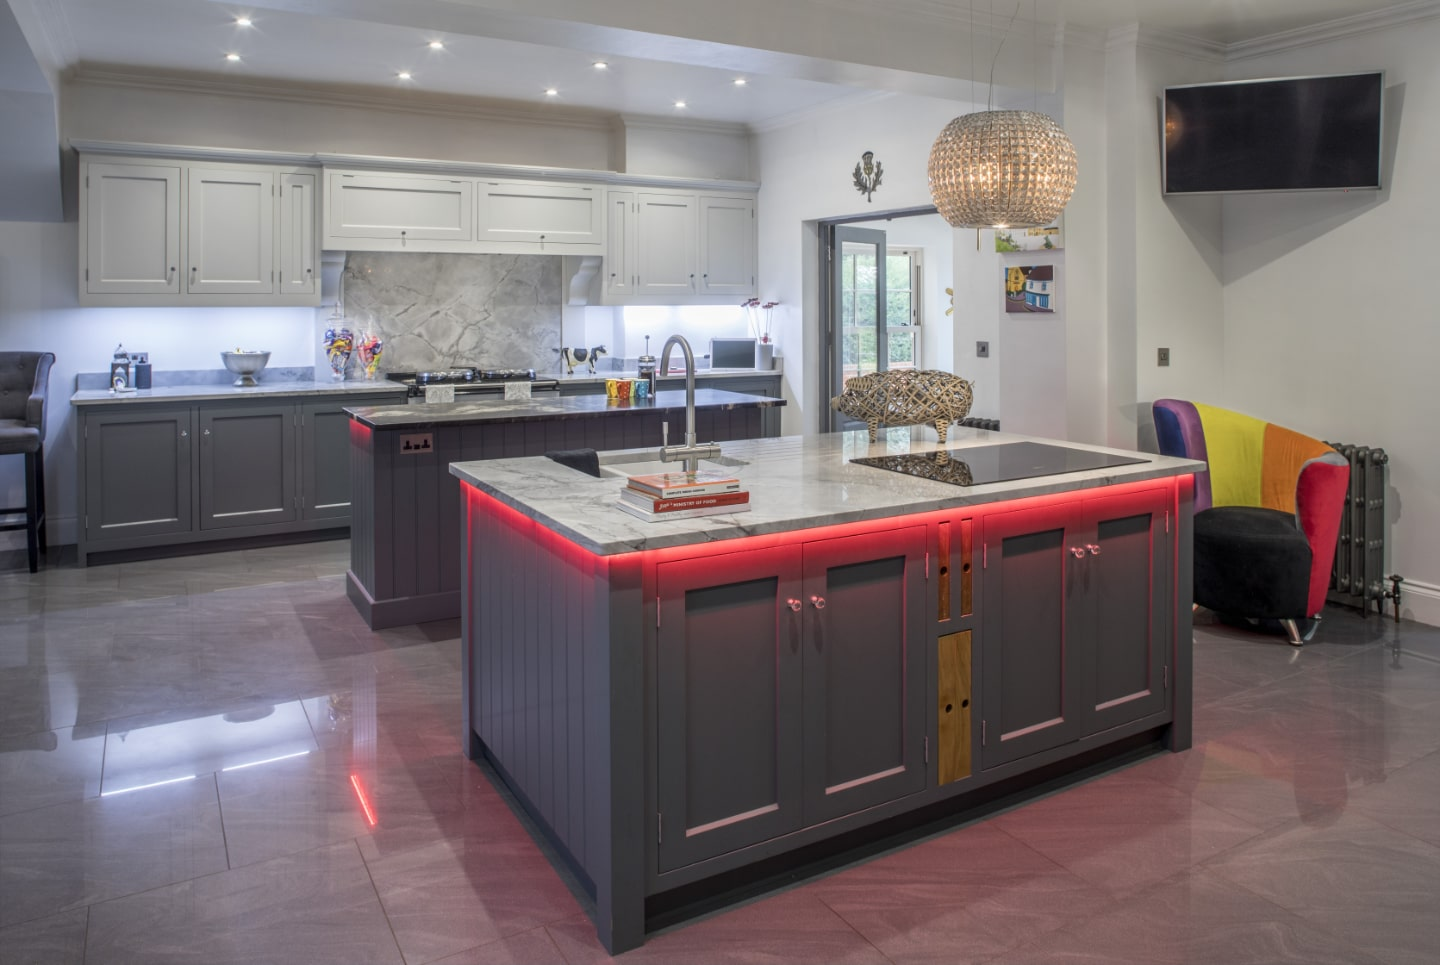 A bespoke kitchen with custom, red LED lighting under the work tops.